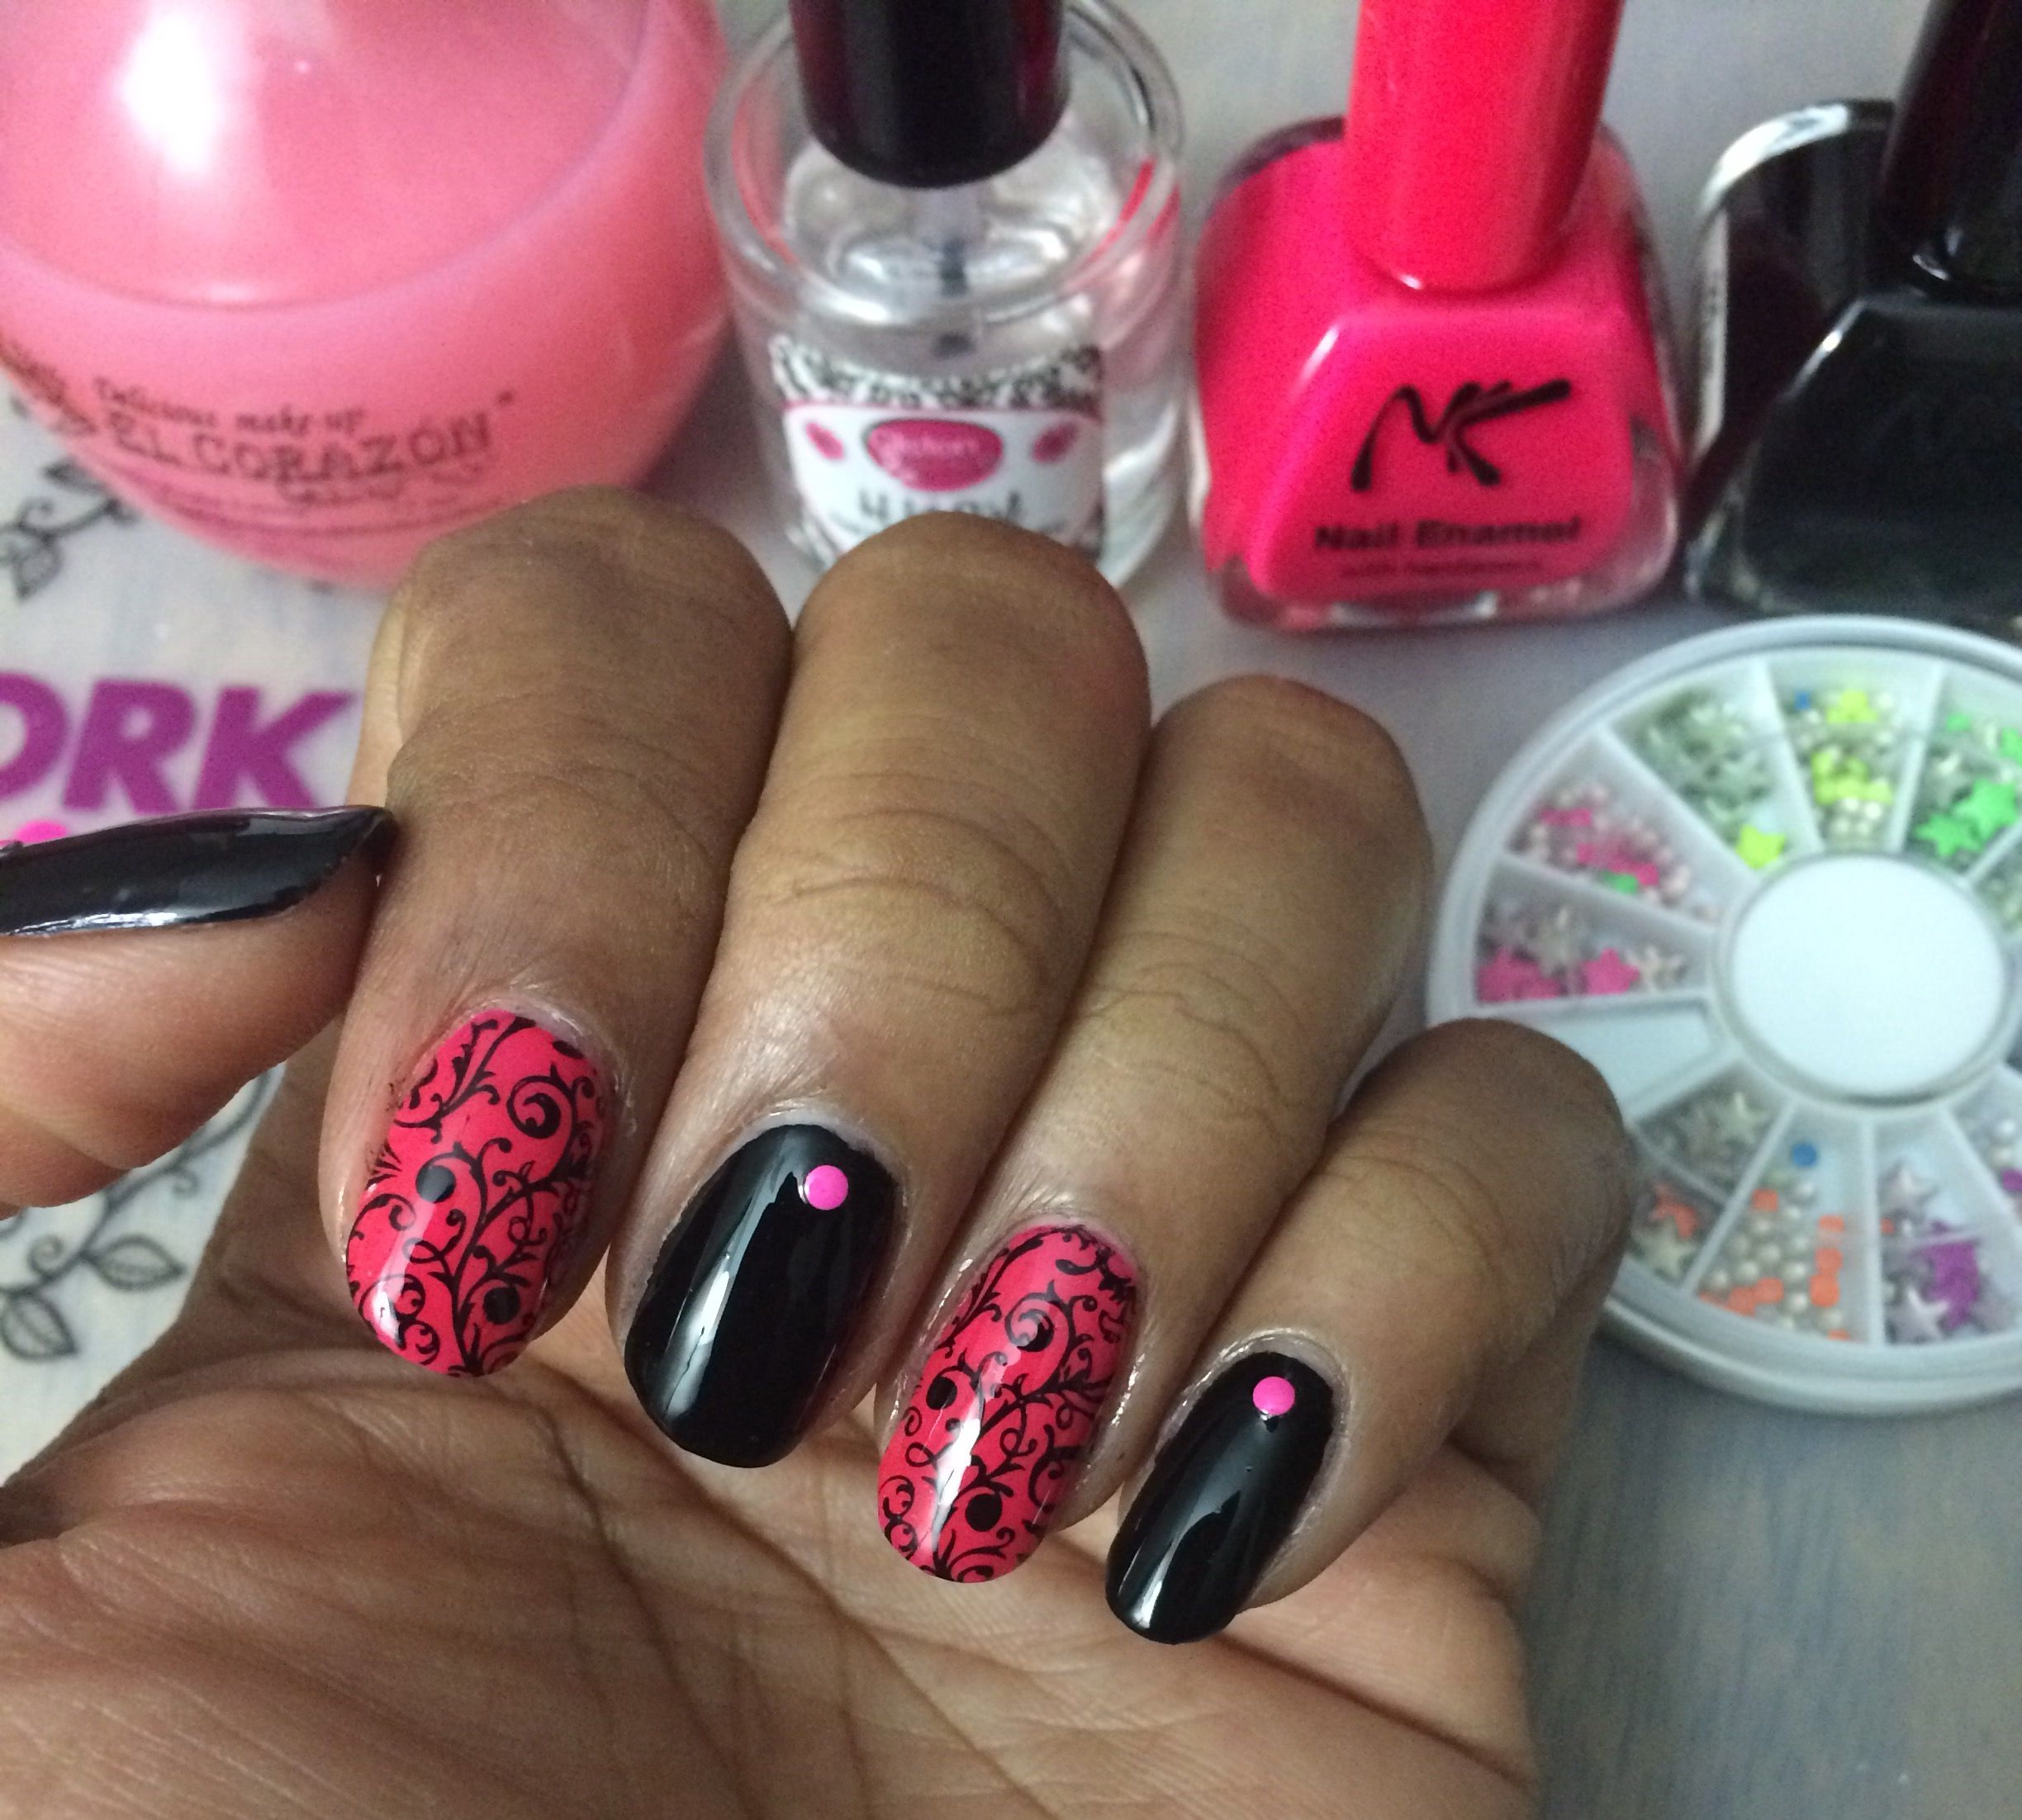 NK nail polish Noir and Fuchsia El Corazon Base Coat H K Girl Top ...